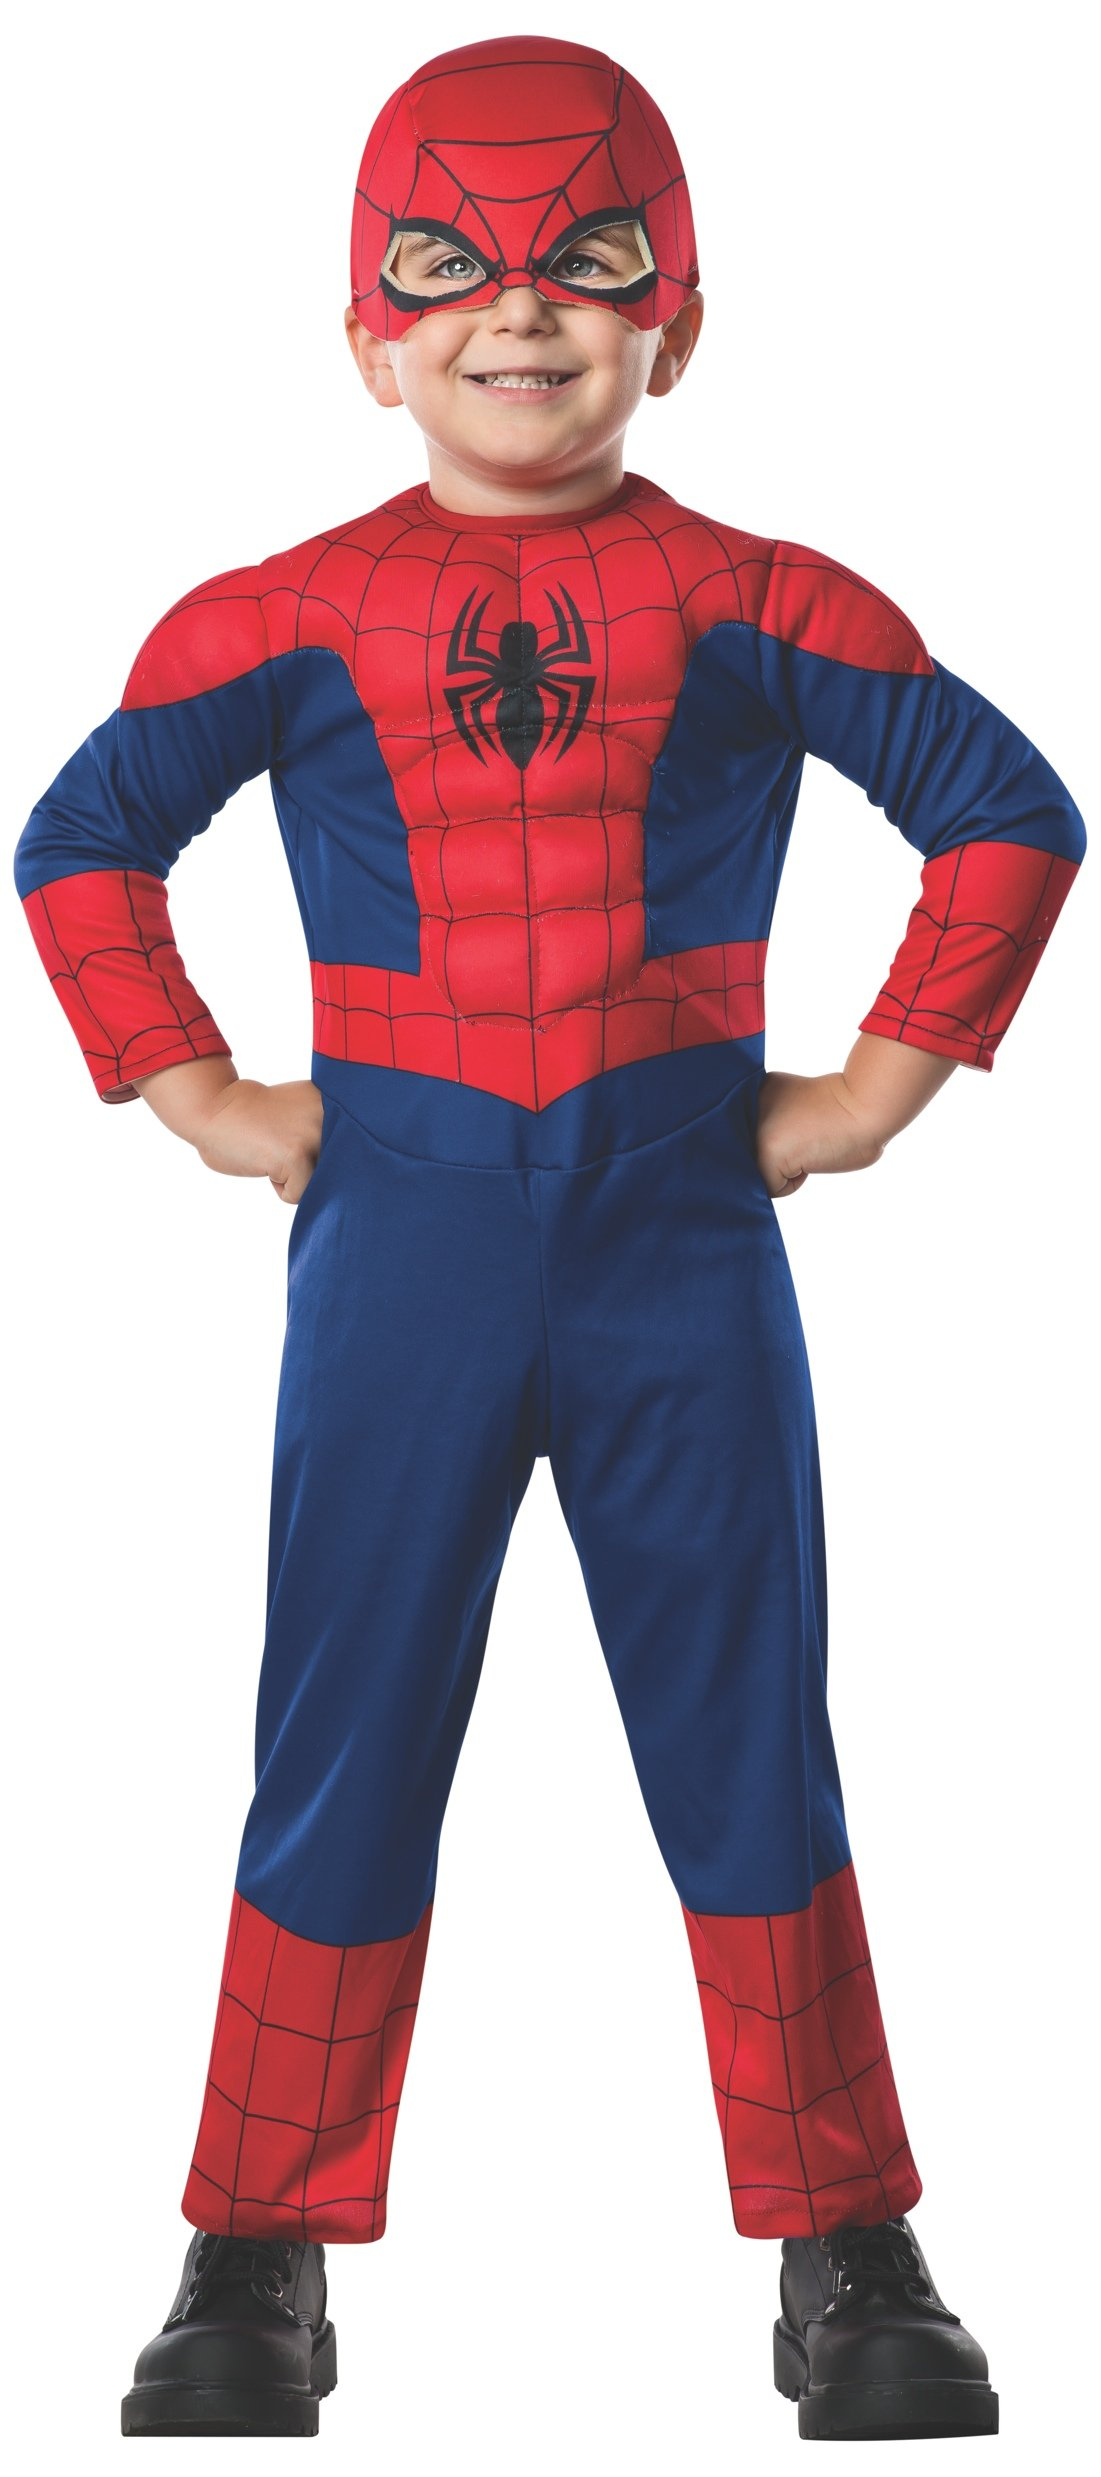 Rubie's Marvel Ultimate Spider-Man Toddler Costume Toddler - Toddler One Color